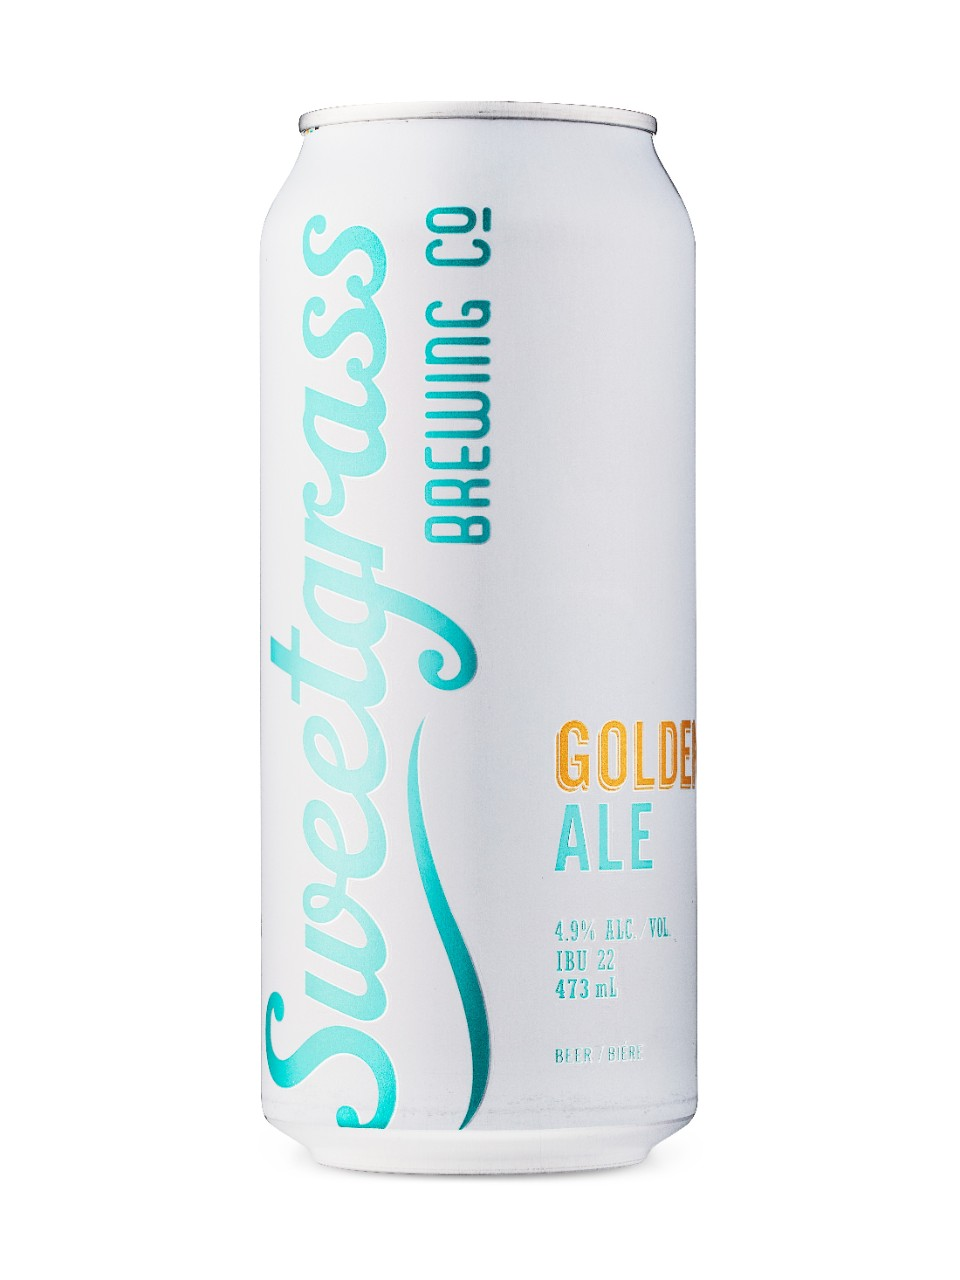 Sweetgrass Golden Ale